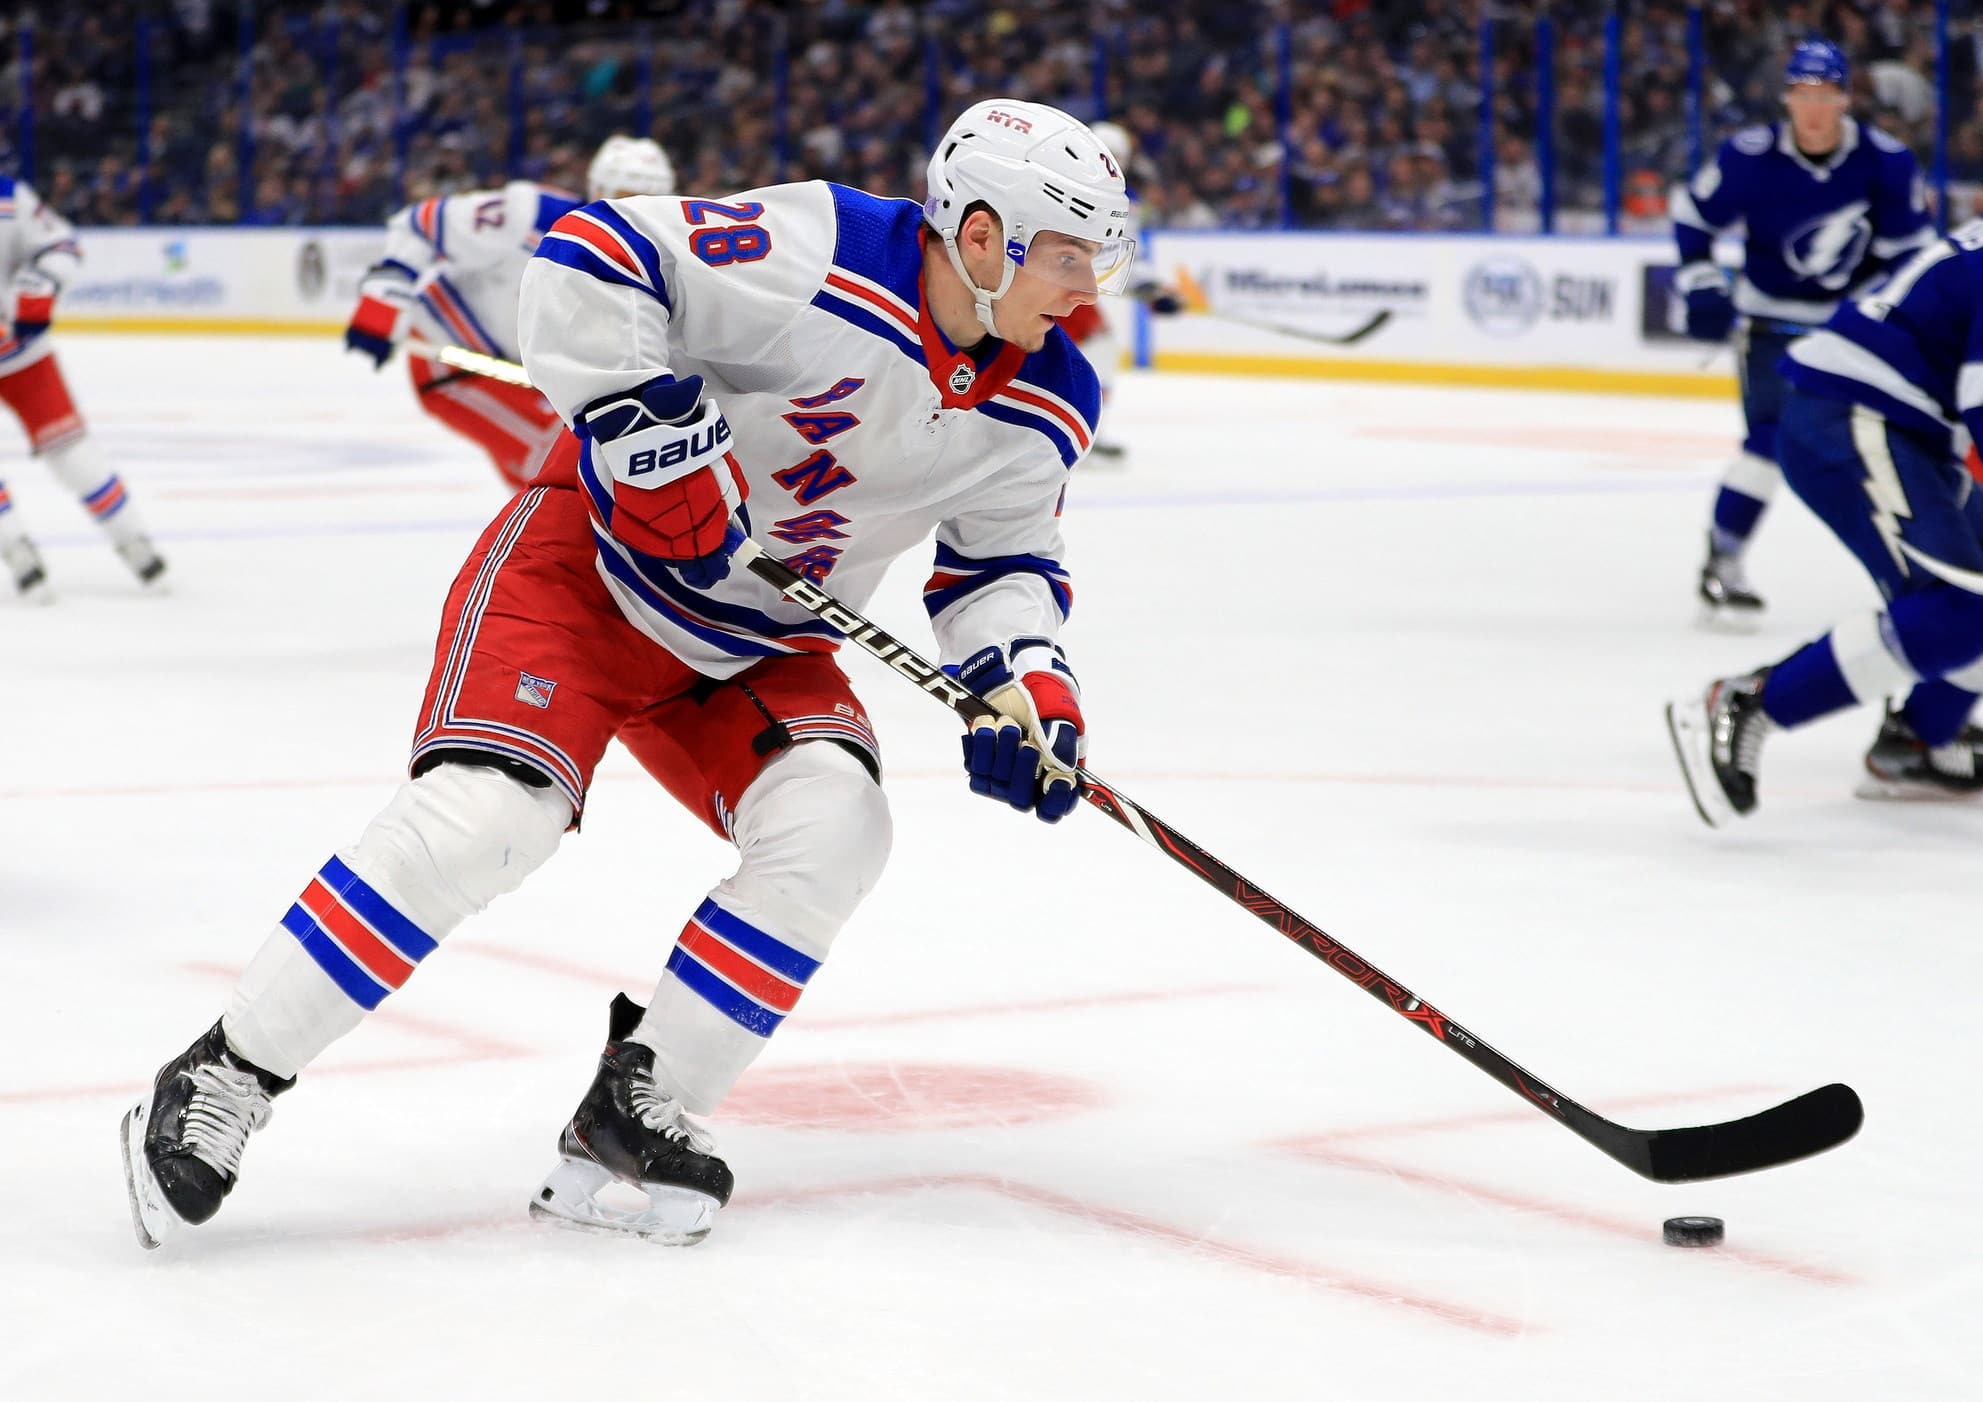 Andersson asks Rangers for trade